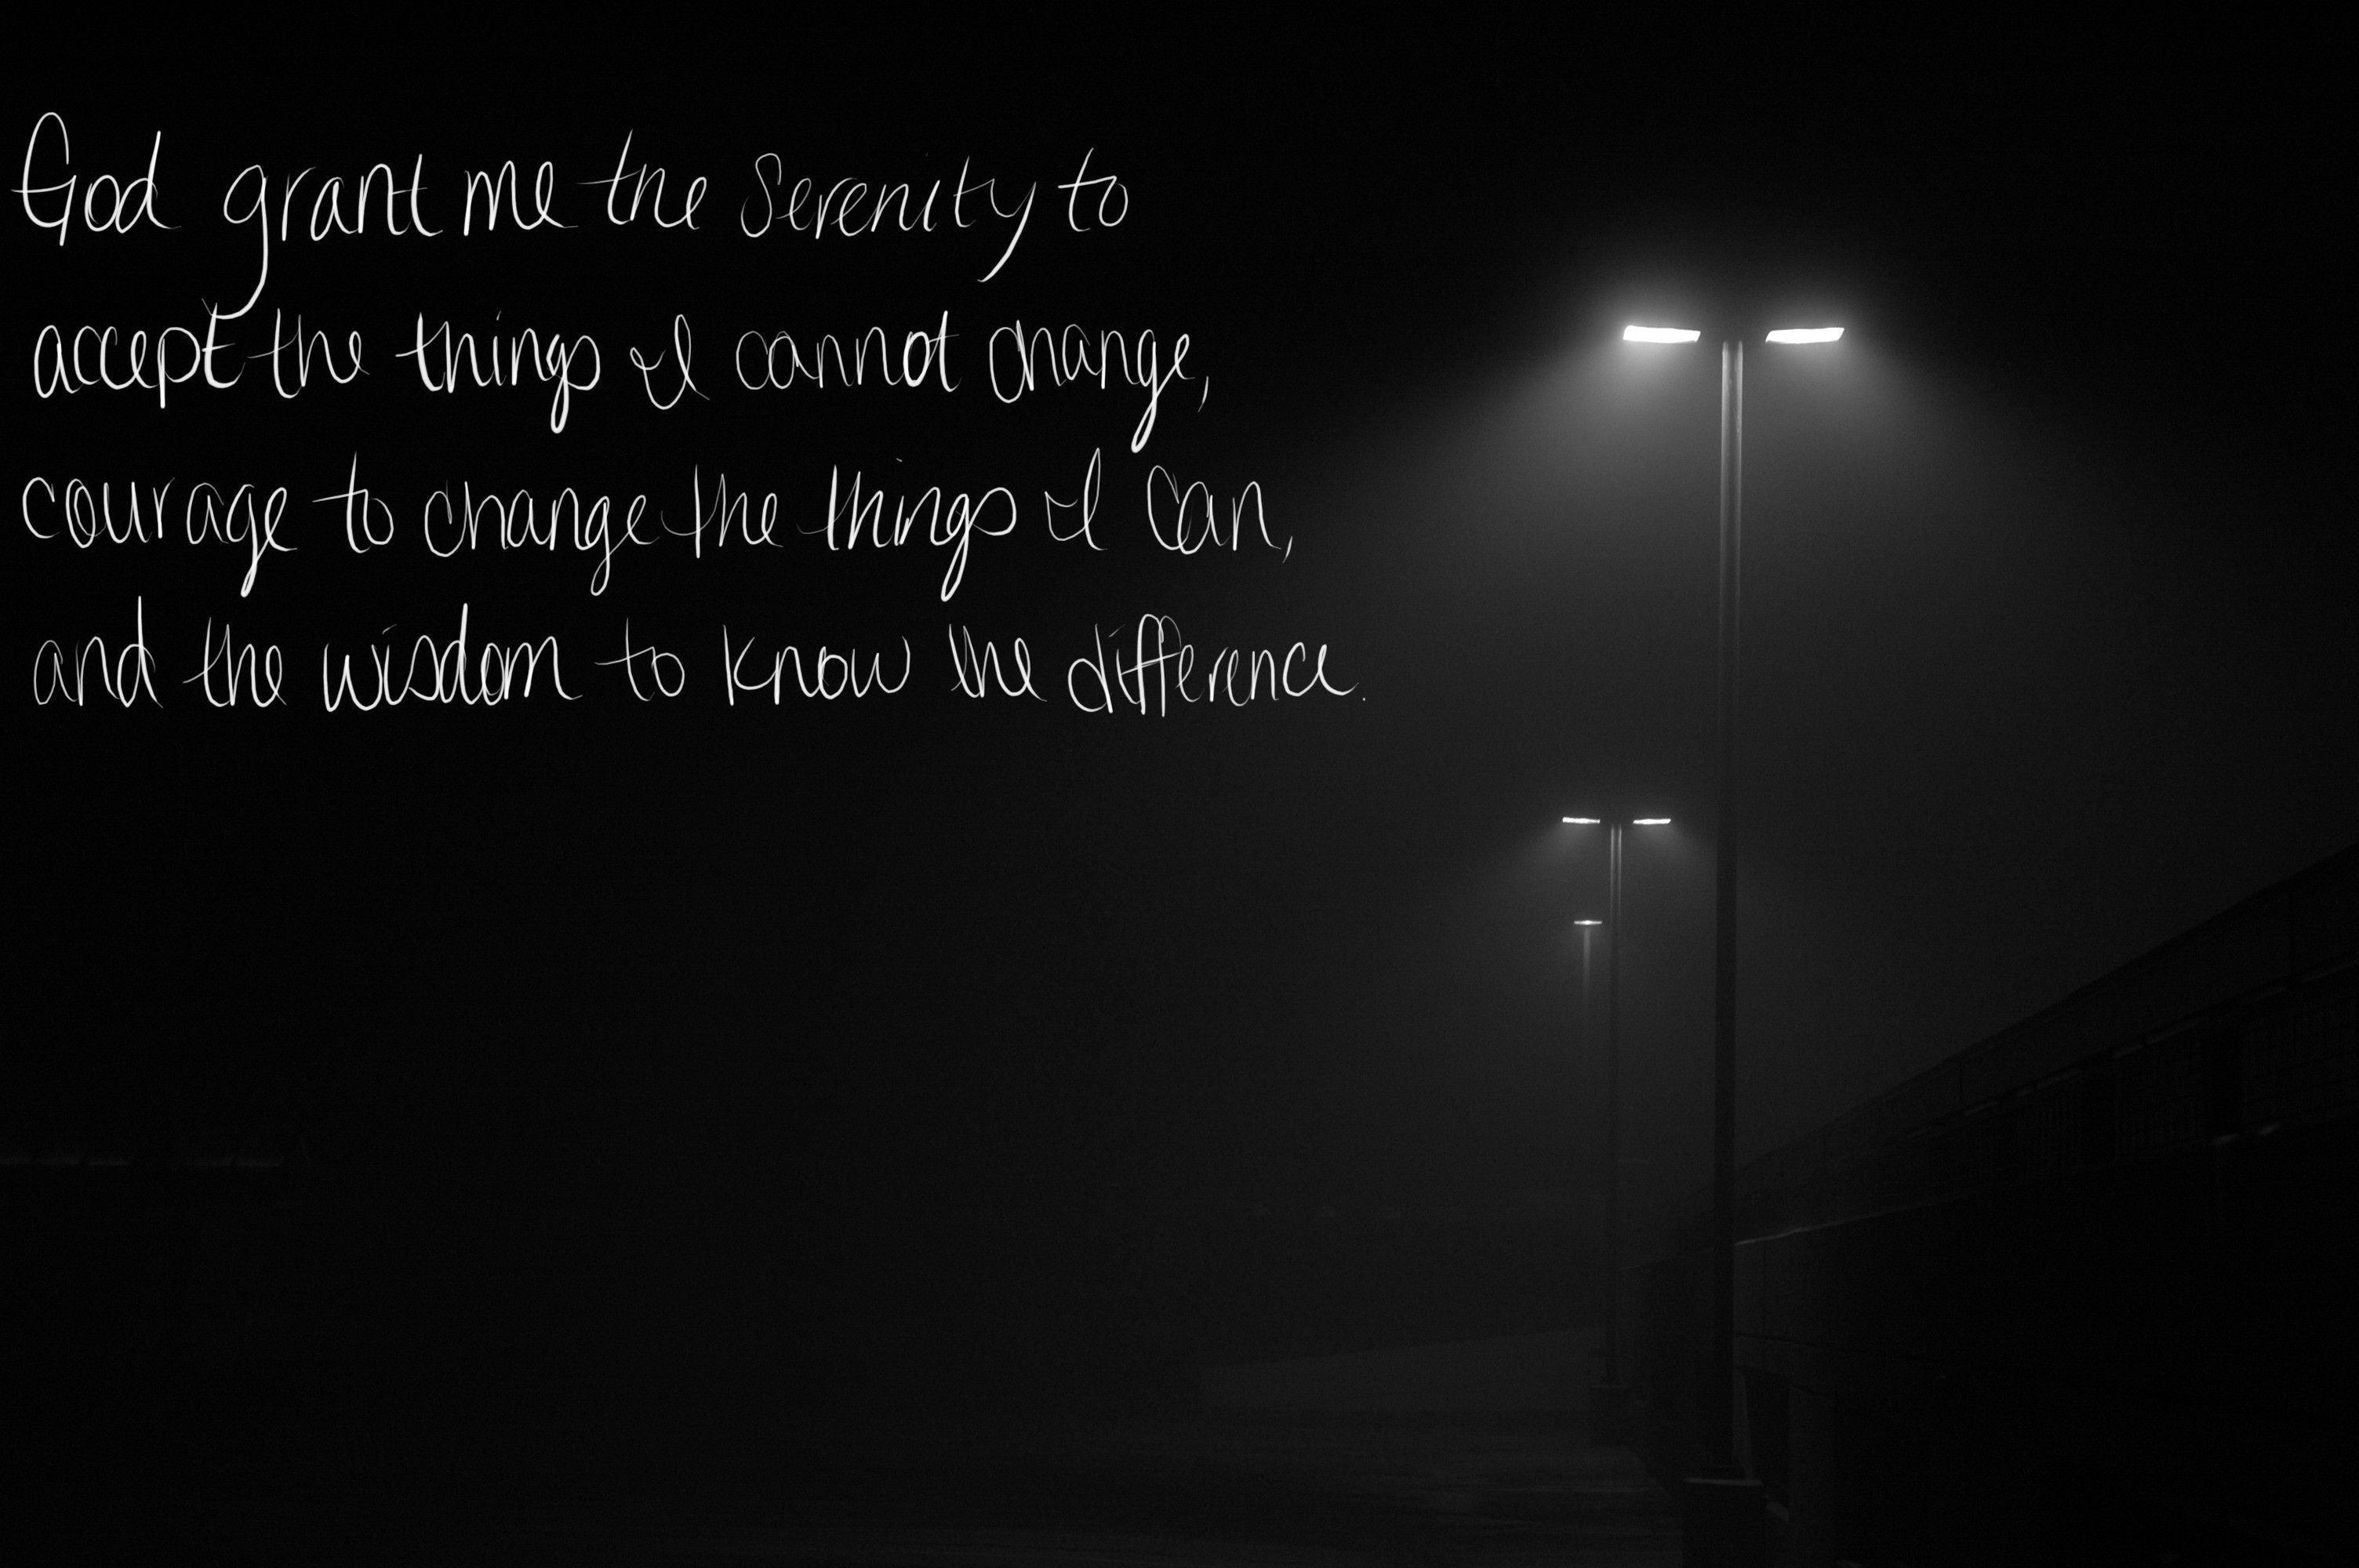 serenity prayer wallpapers and backgrounds 1 of pictures